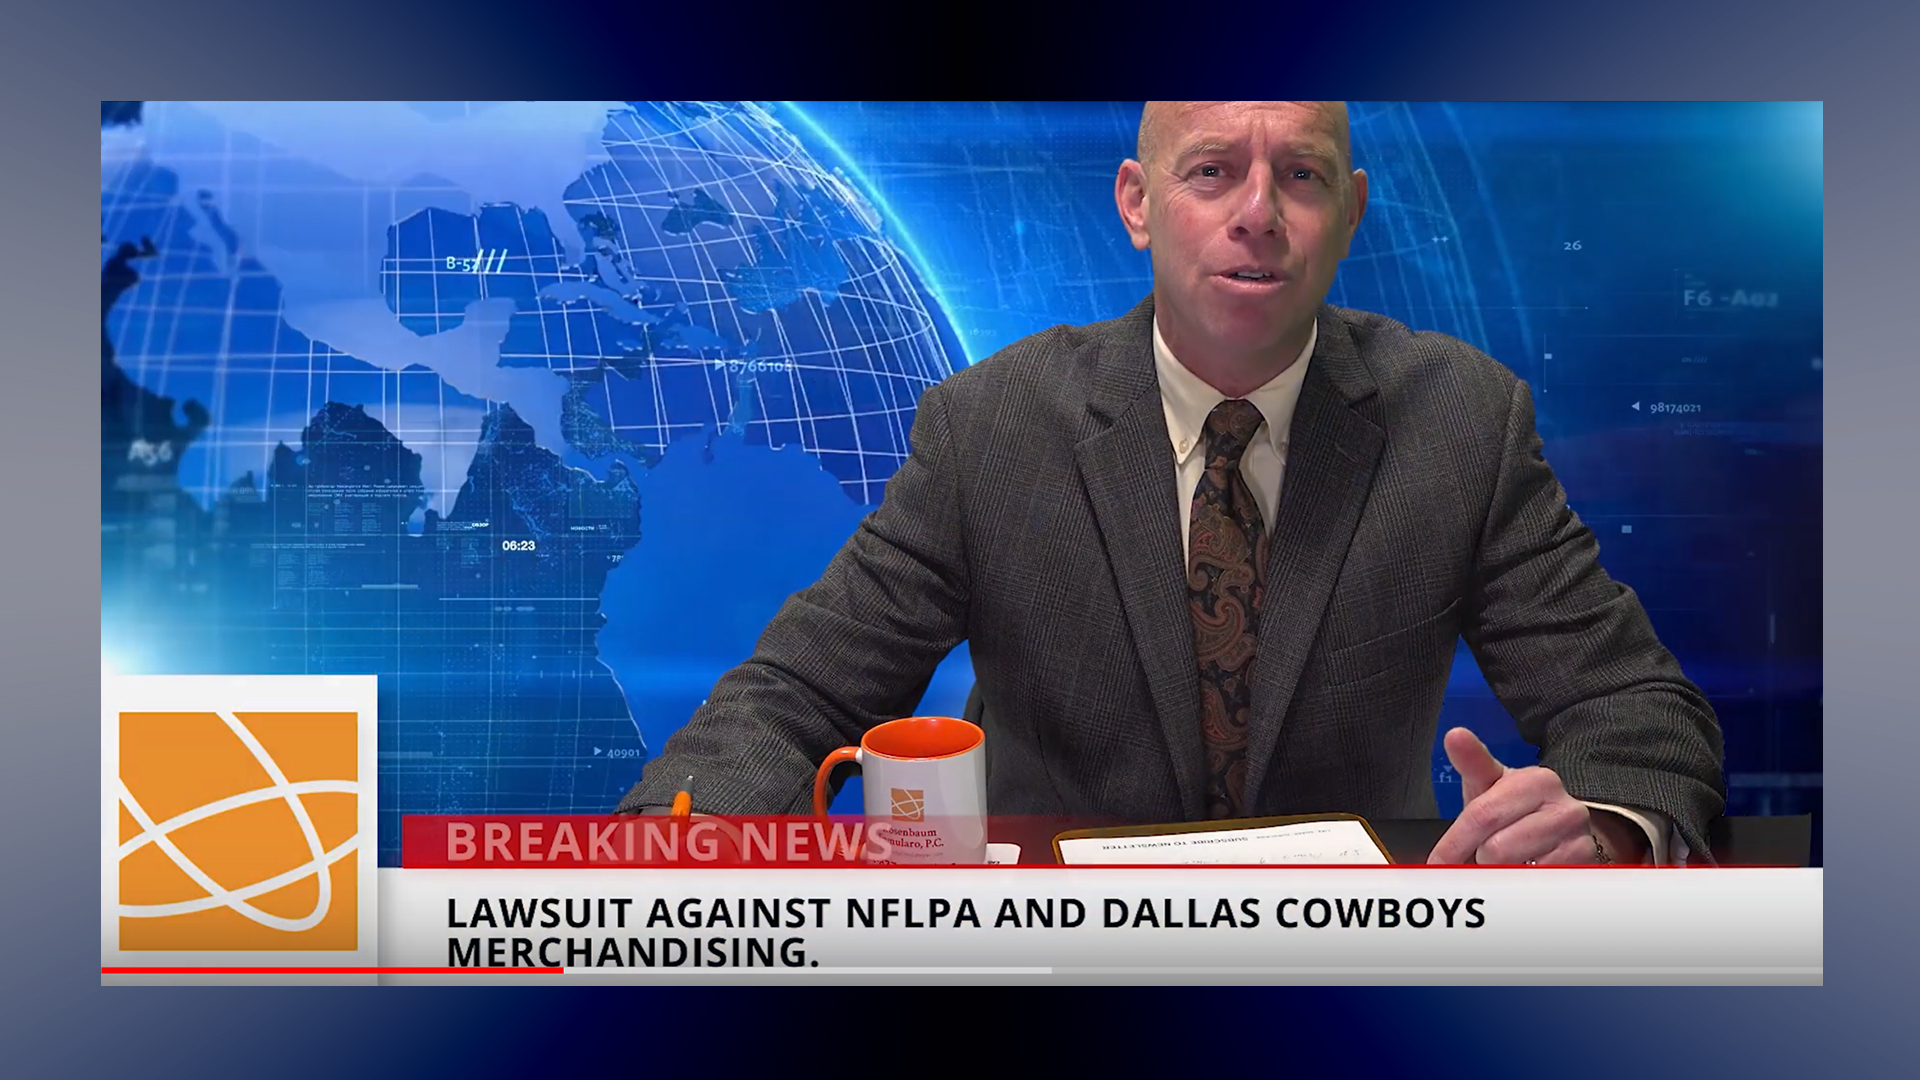 Amazon Sellers' News 12/27/19 - Lawsuit Against NFL PA & Dallas Cowboys Merchandising, IP Complaints & Plan of Action Rejections